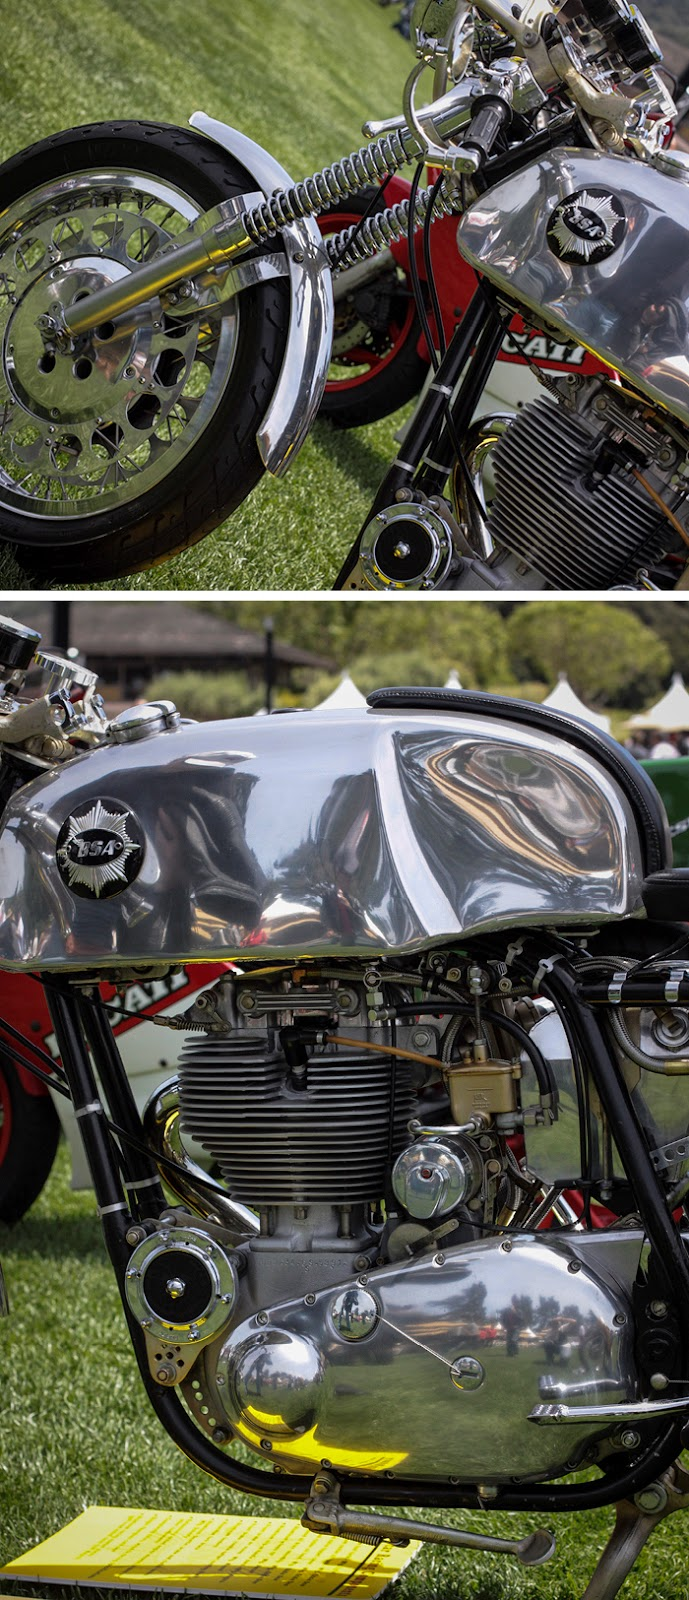 Custom BSA motorcycle - the Quail Motorcycle Gathering